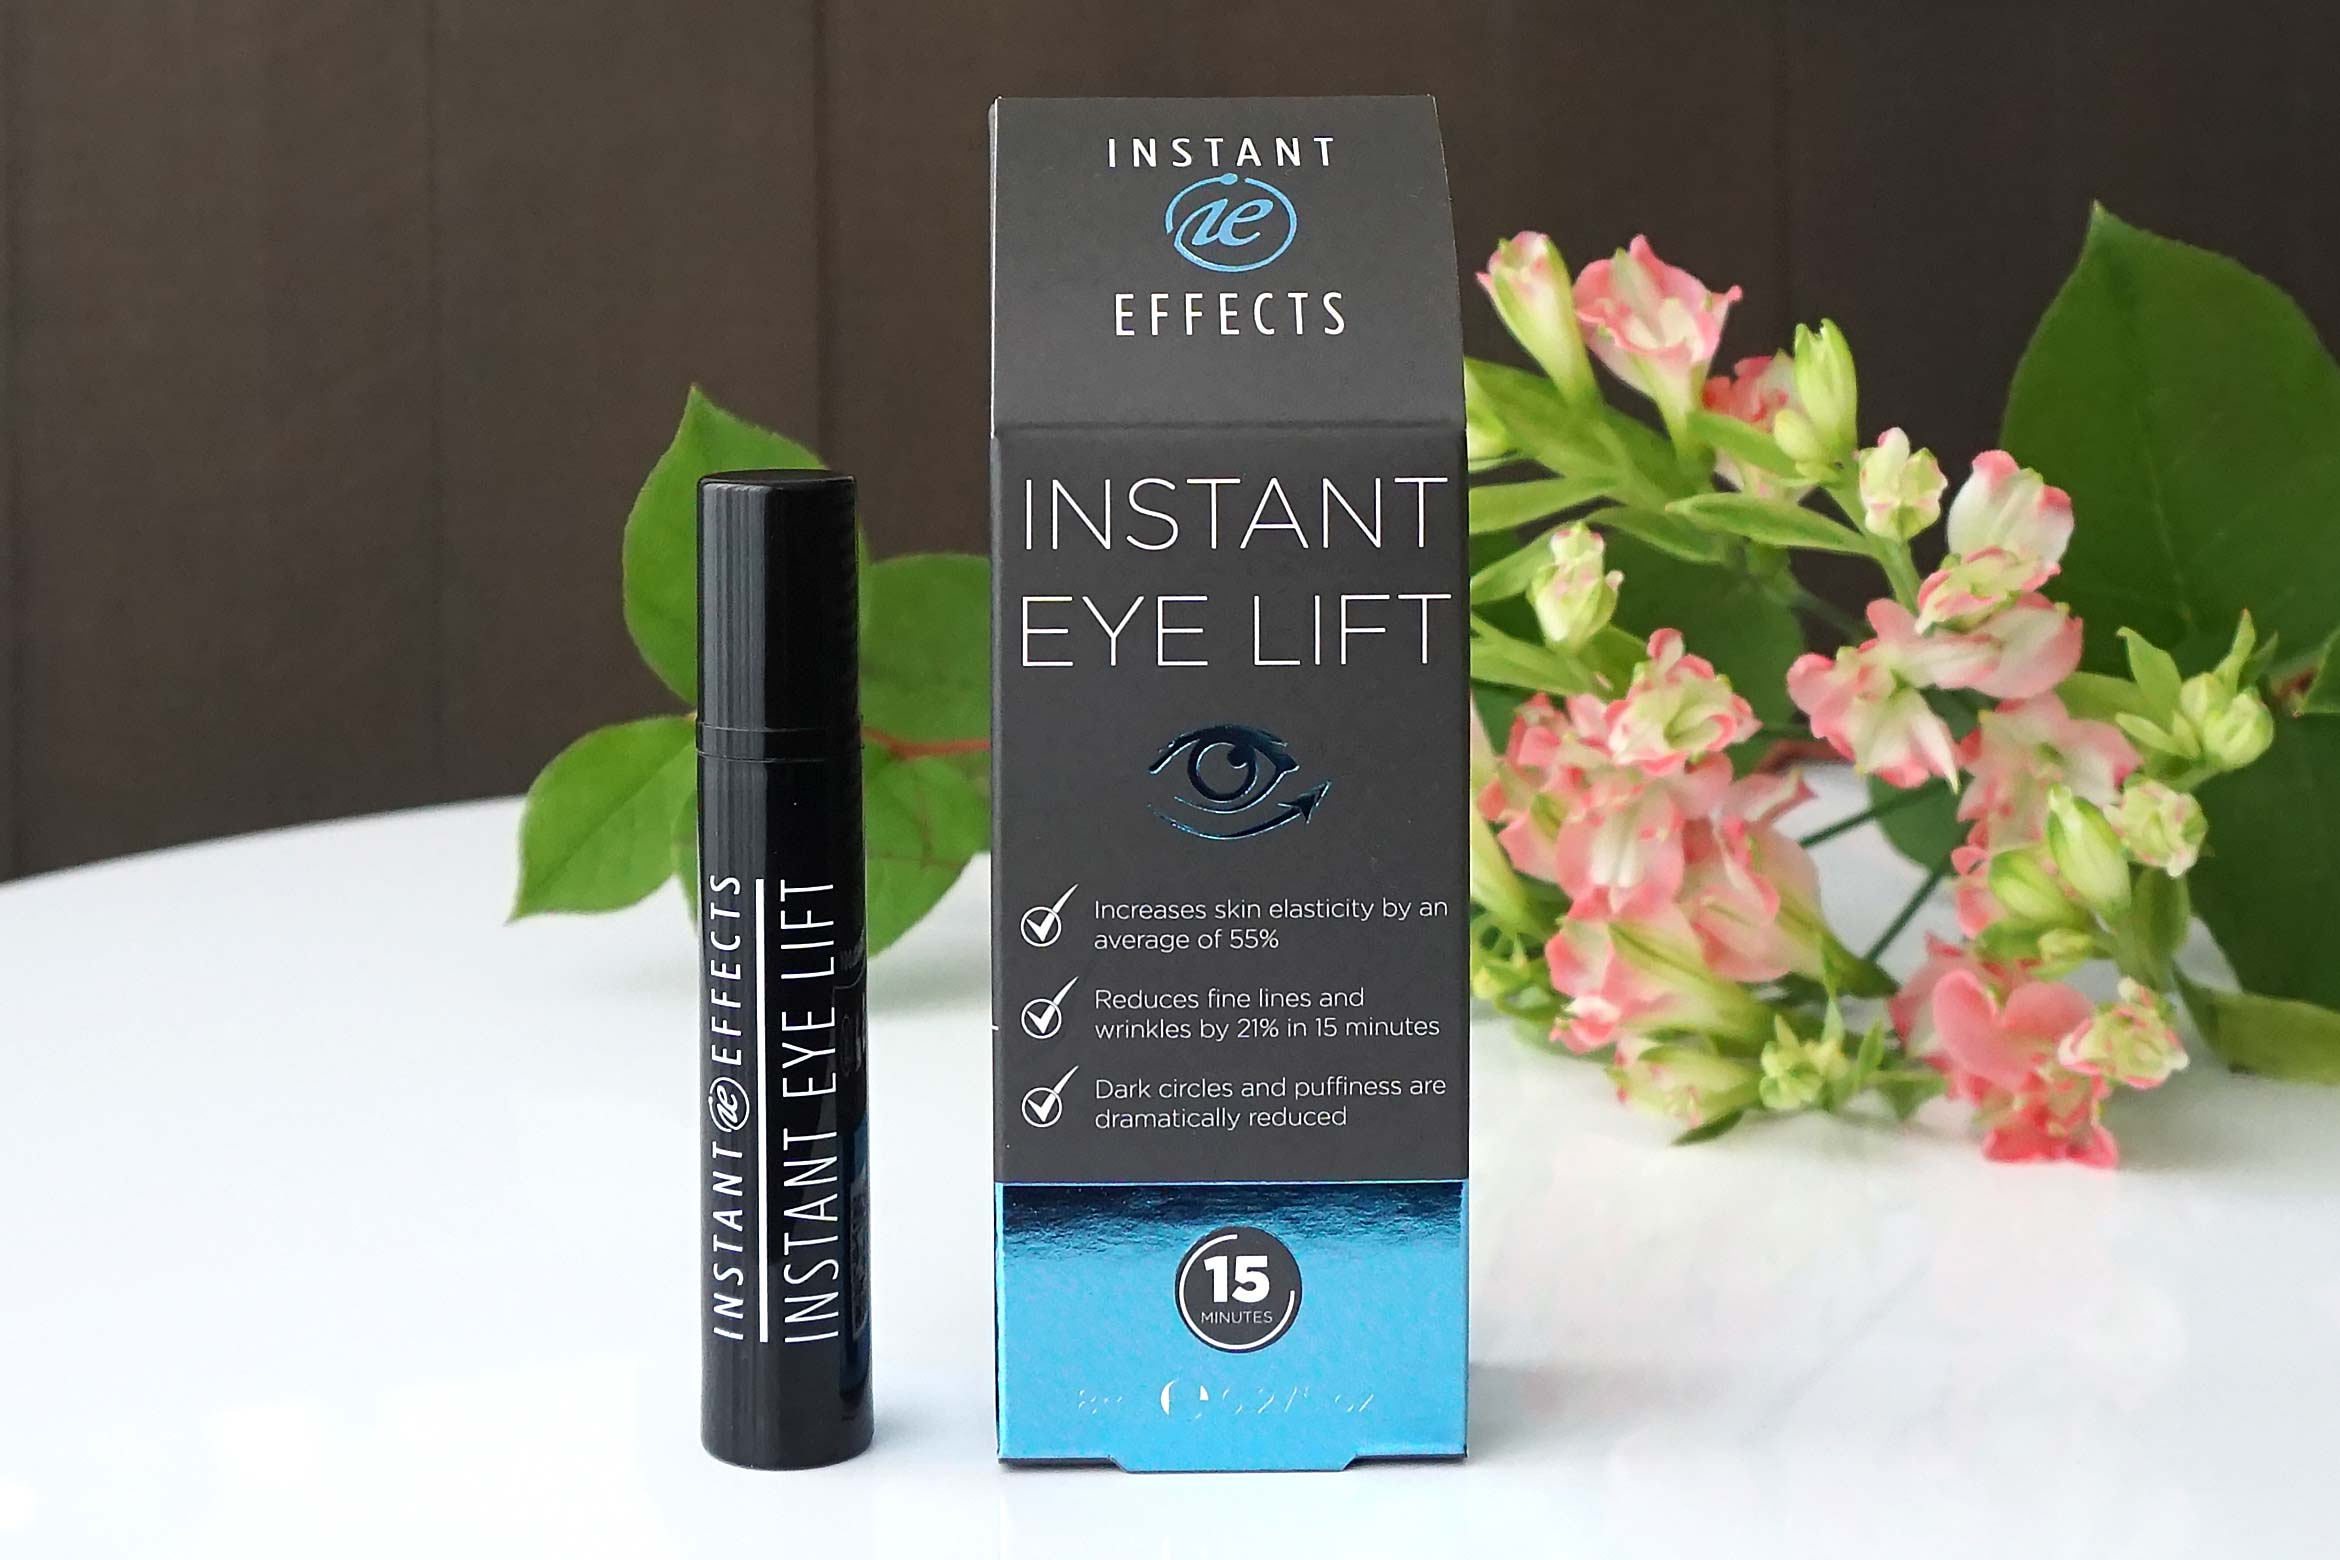 Instant-Effects-Instant-Eye-Lift-review